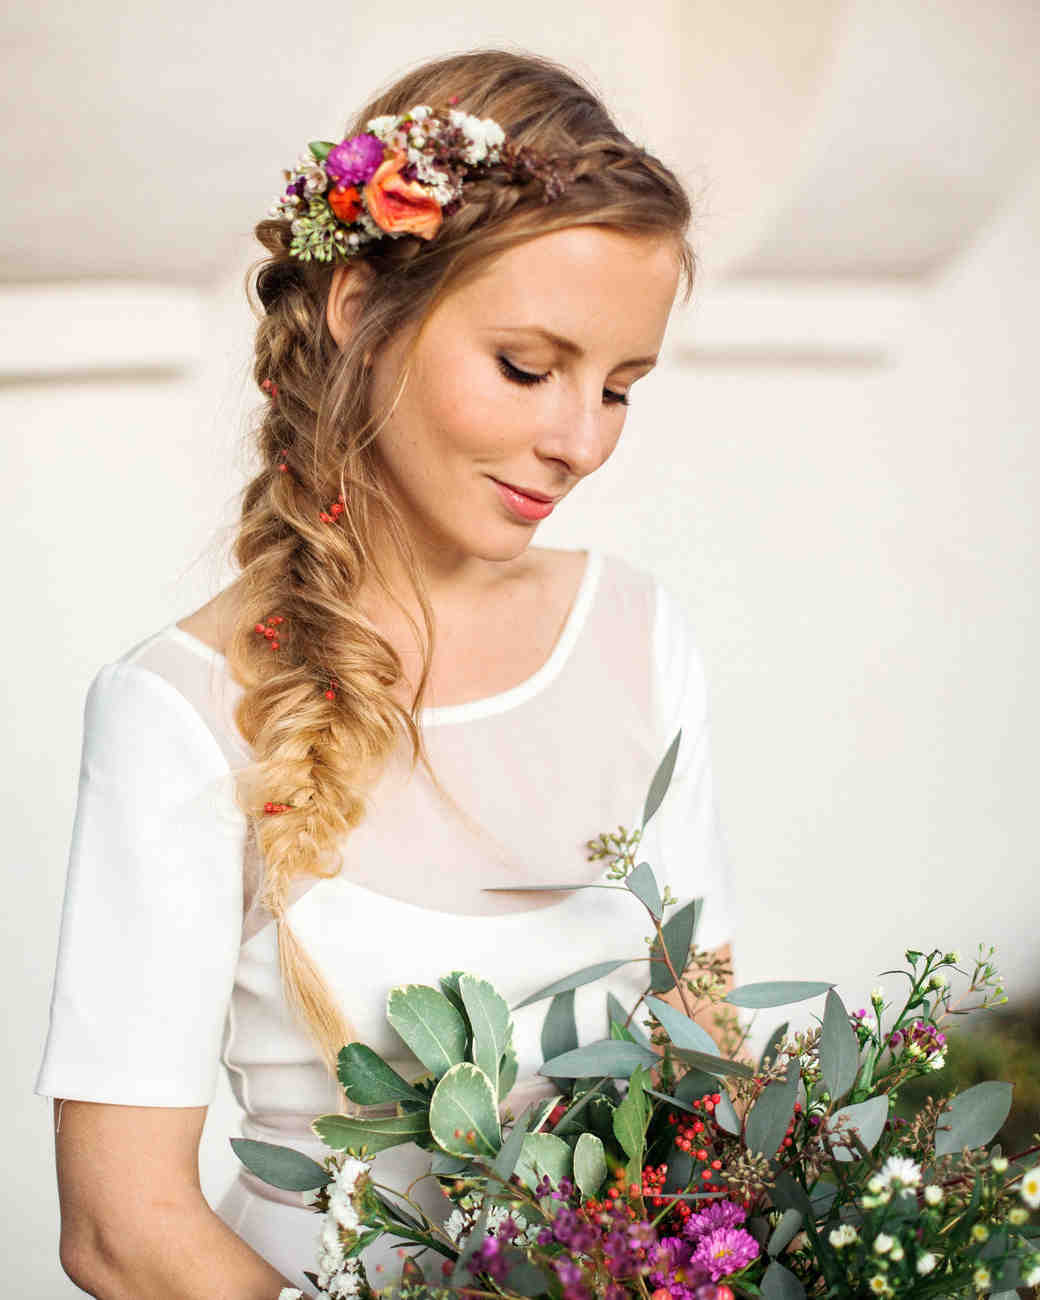 Braided Wedding Hair: Boho-Chic Wedding Ideas For Free-Spirited Brides And